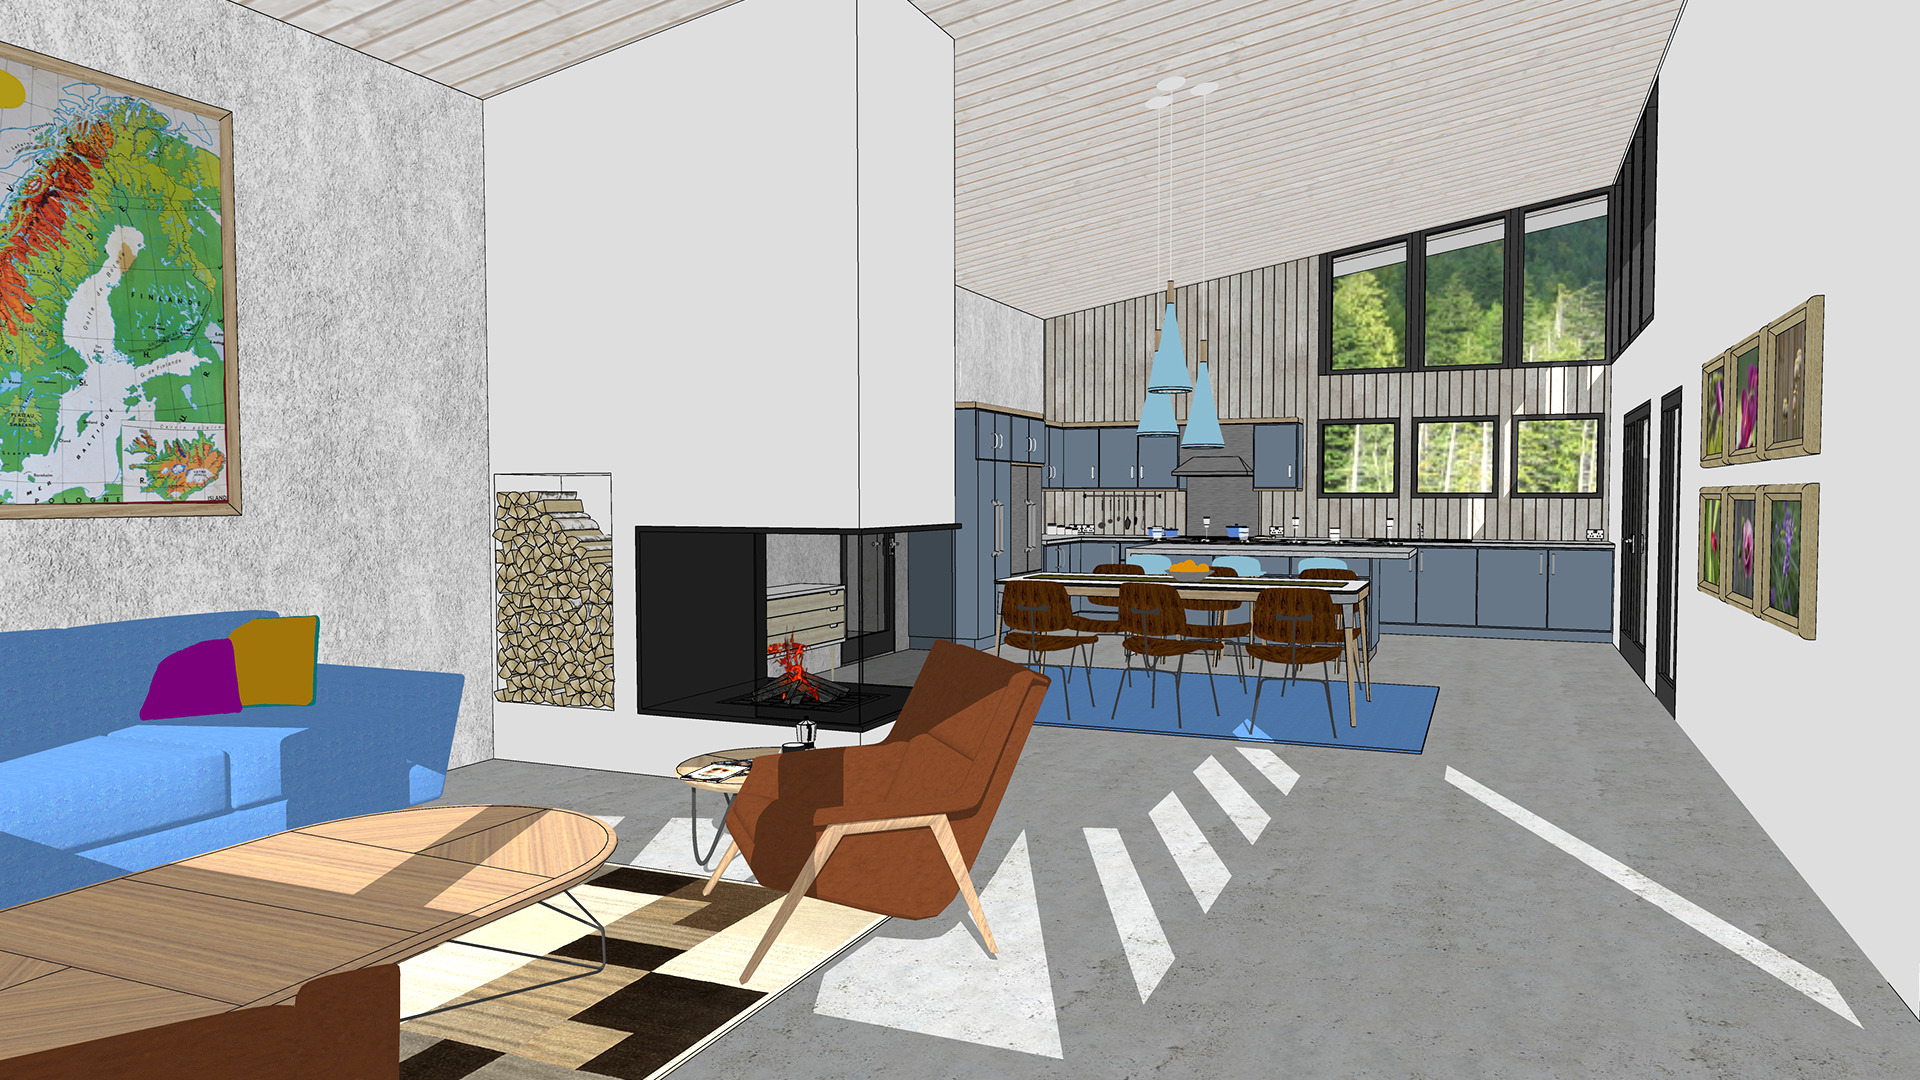 Sketchup Projects For Beginners